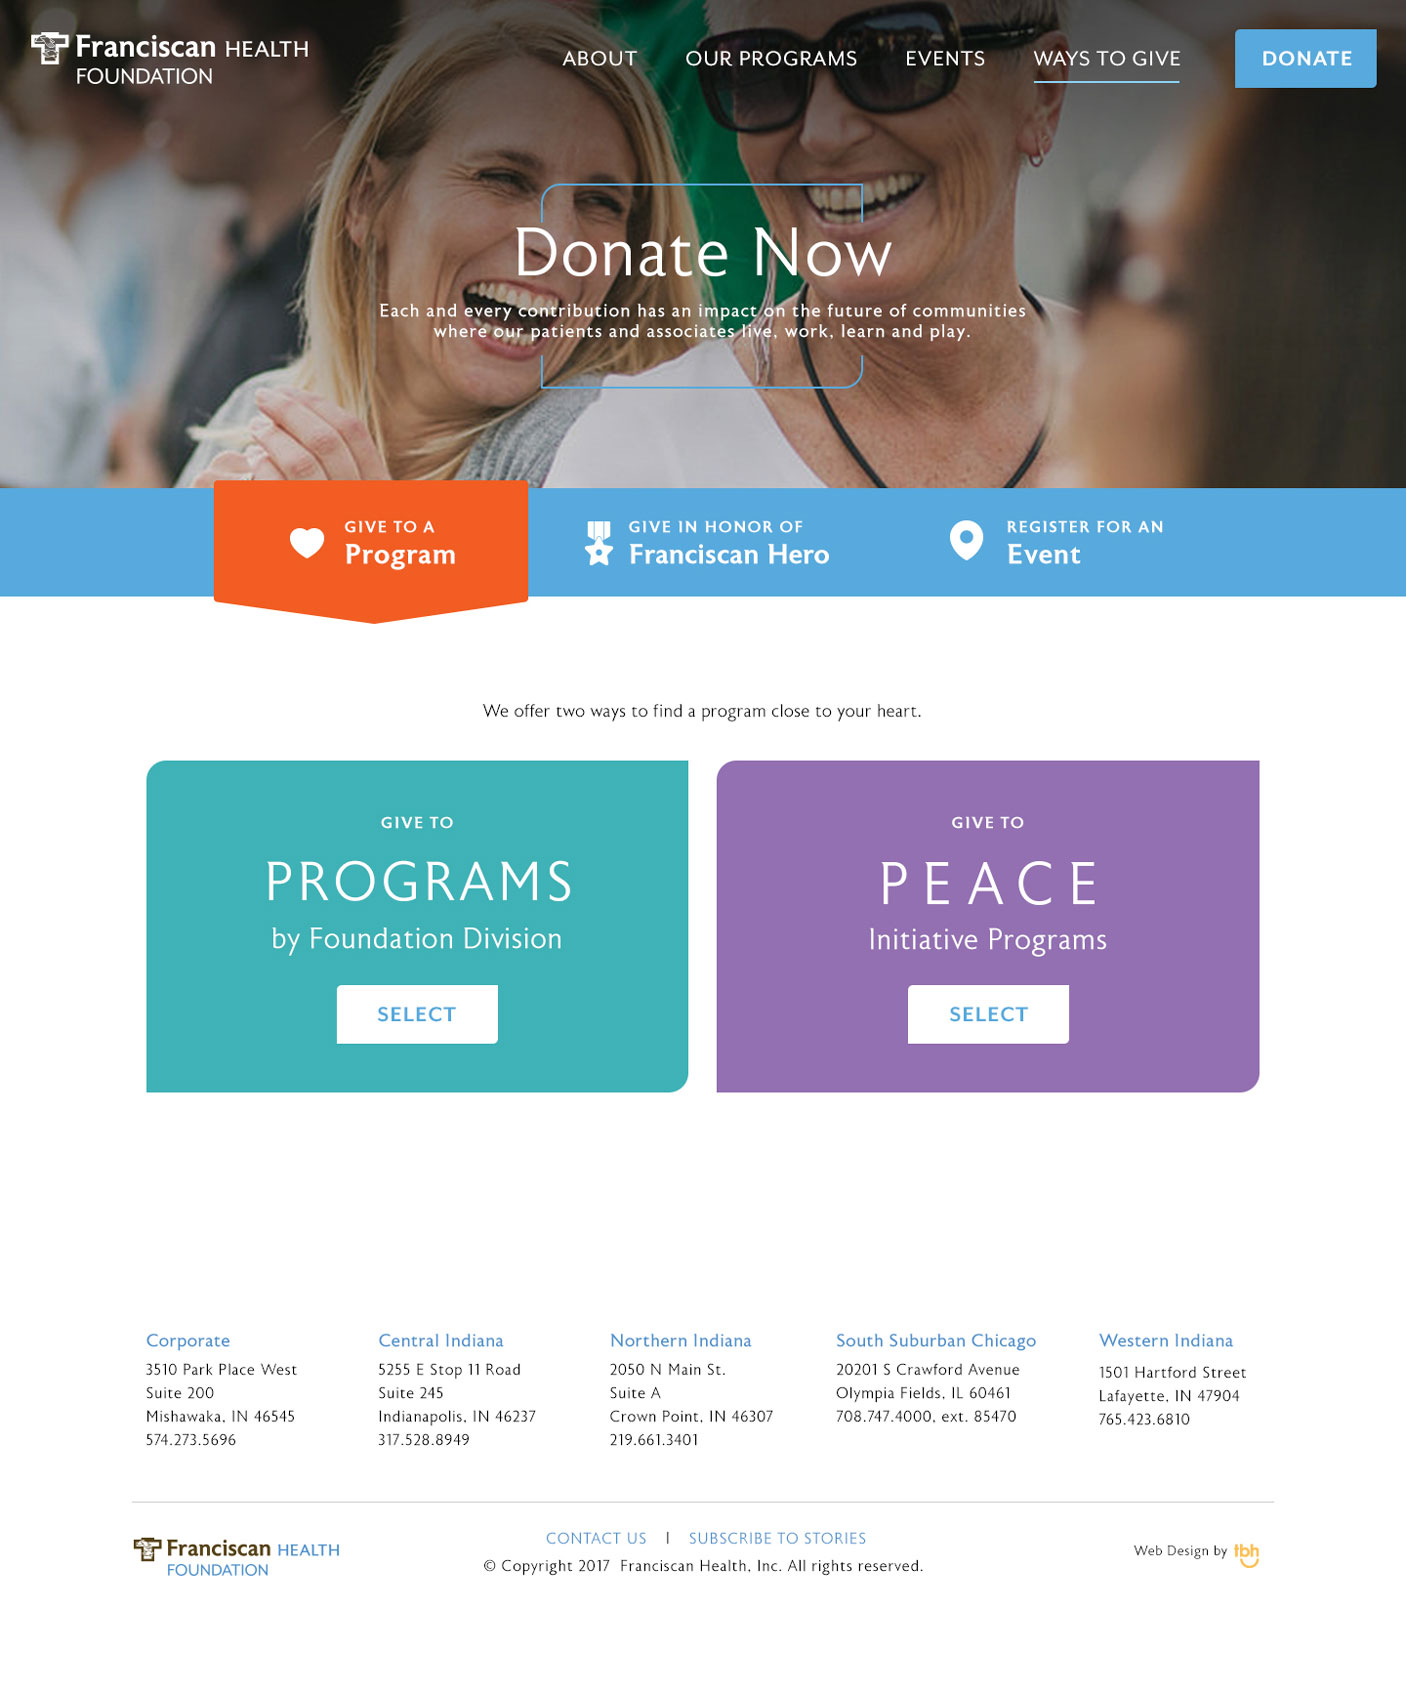 Franciscan Health Foundation Program Donation web page